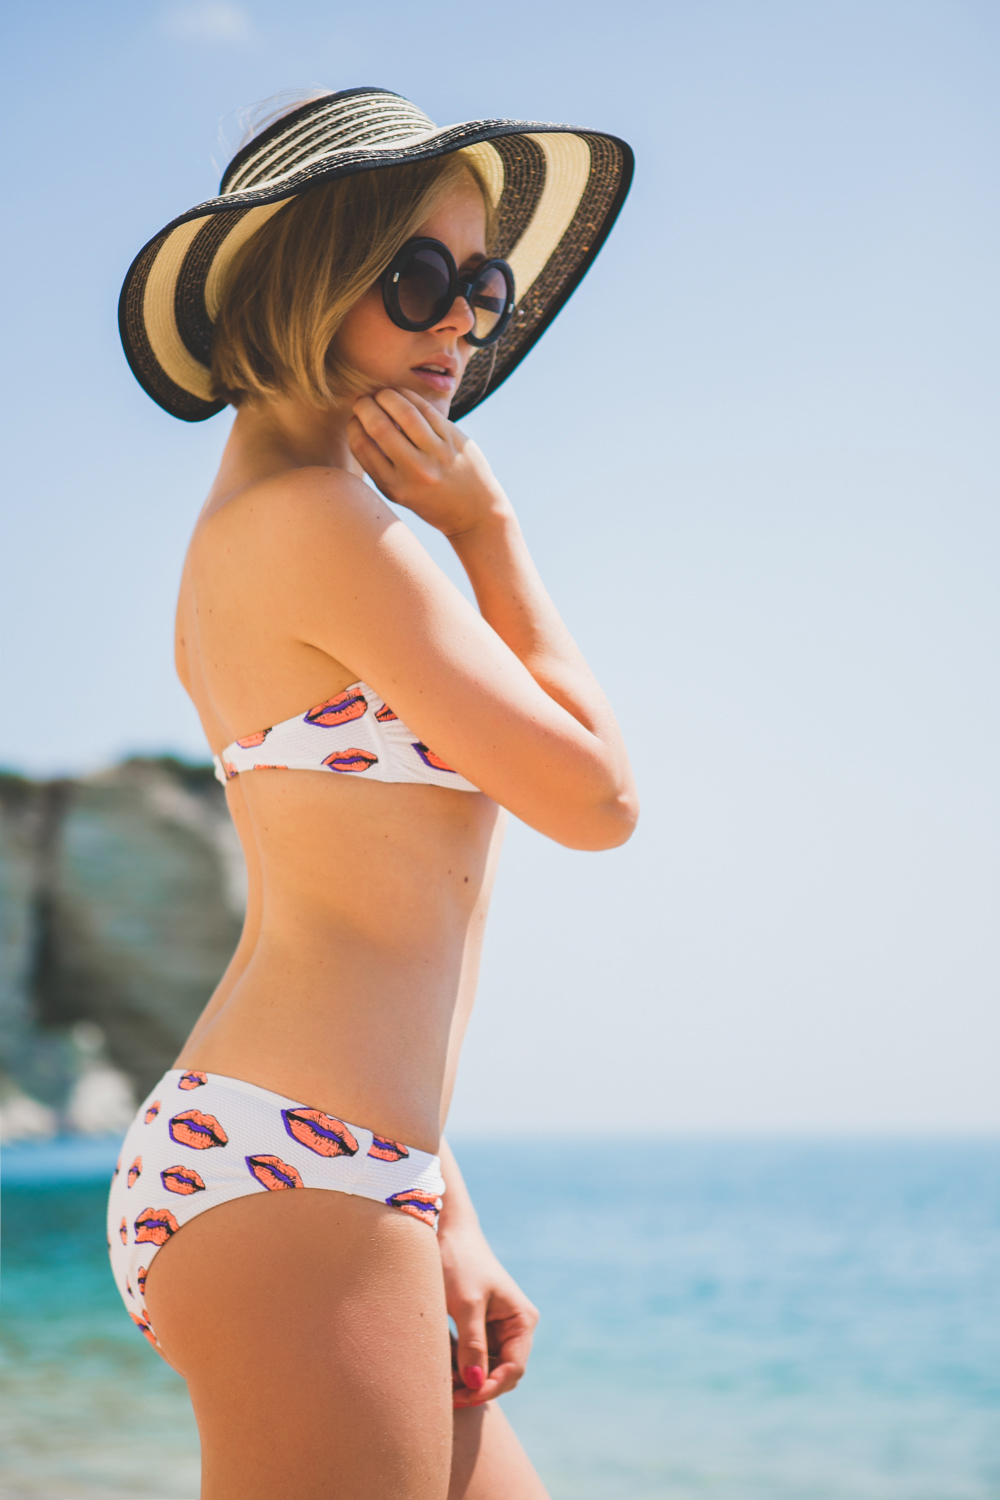 darya kamalova thecablook fashion lifestyle blogger from thecablook com in baia dei faraglioni in puglia south italy wearing river island kisses bikini and straw hat-3394